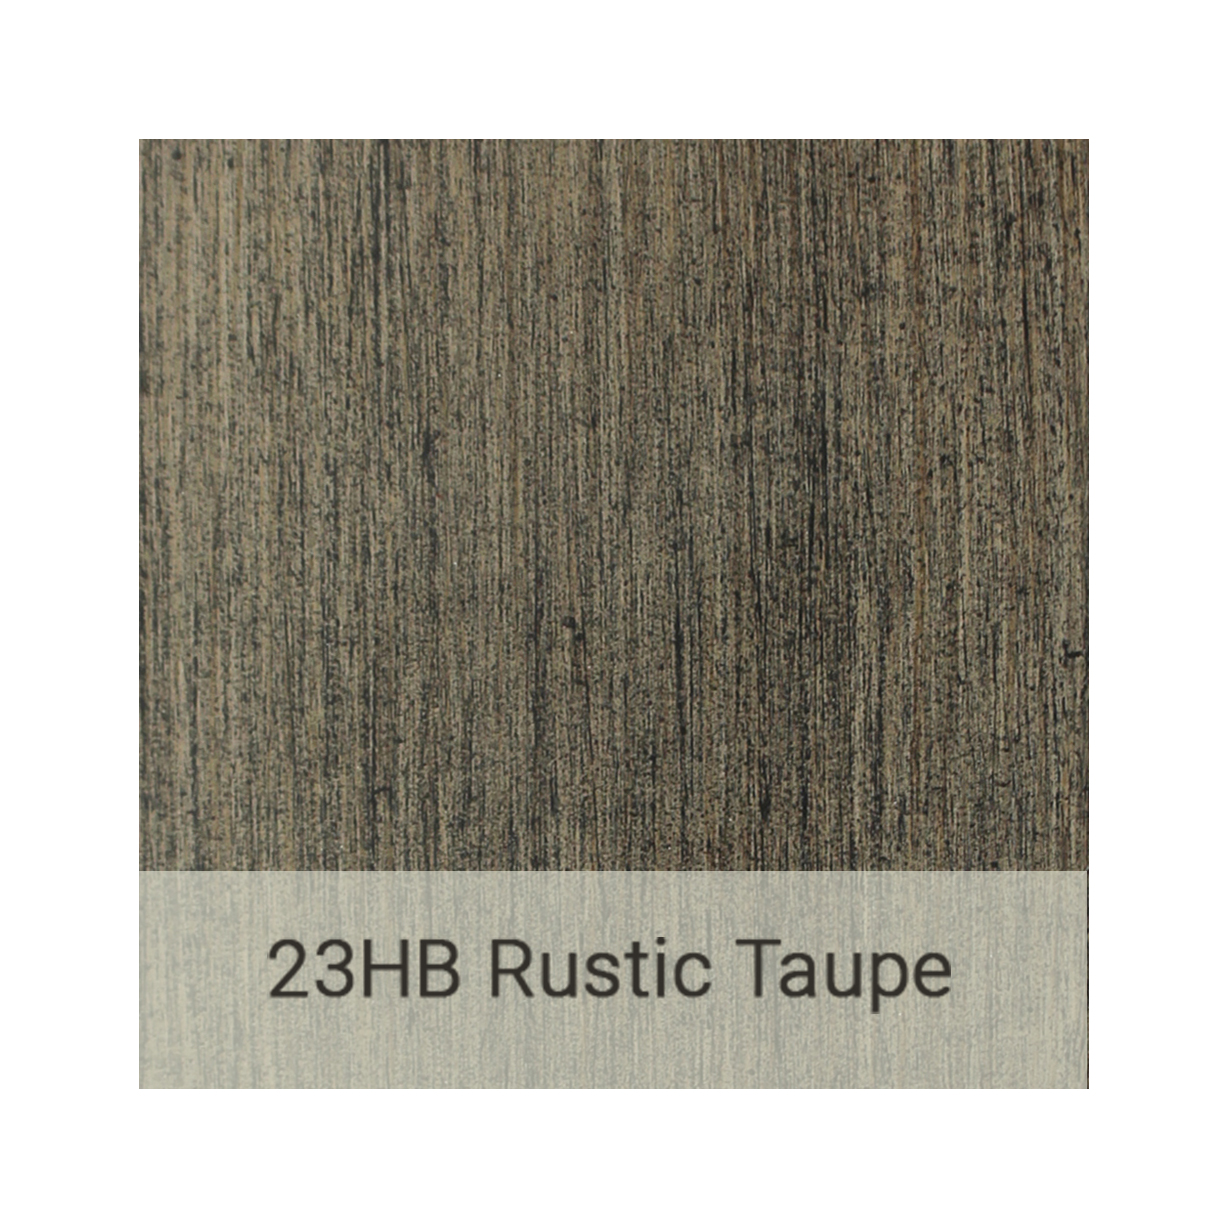 Kingston Casual handbrushed-23hb-rustic-taupe